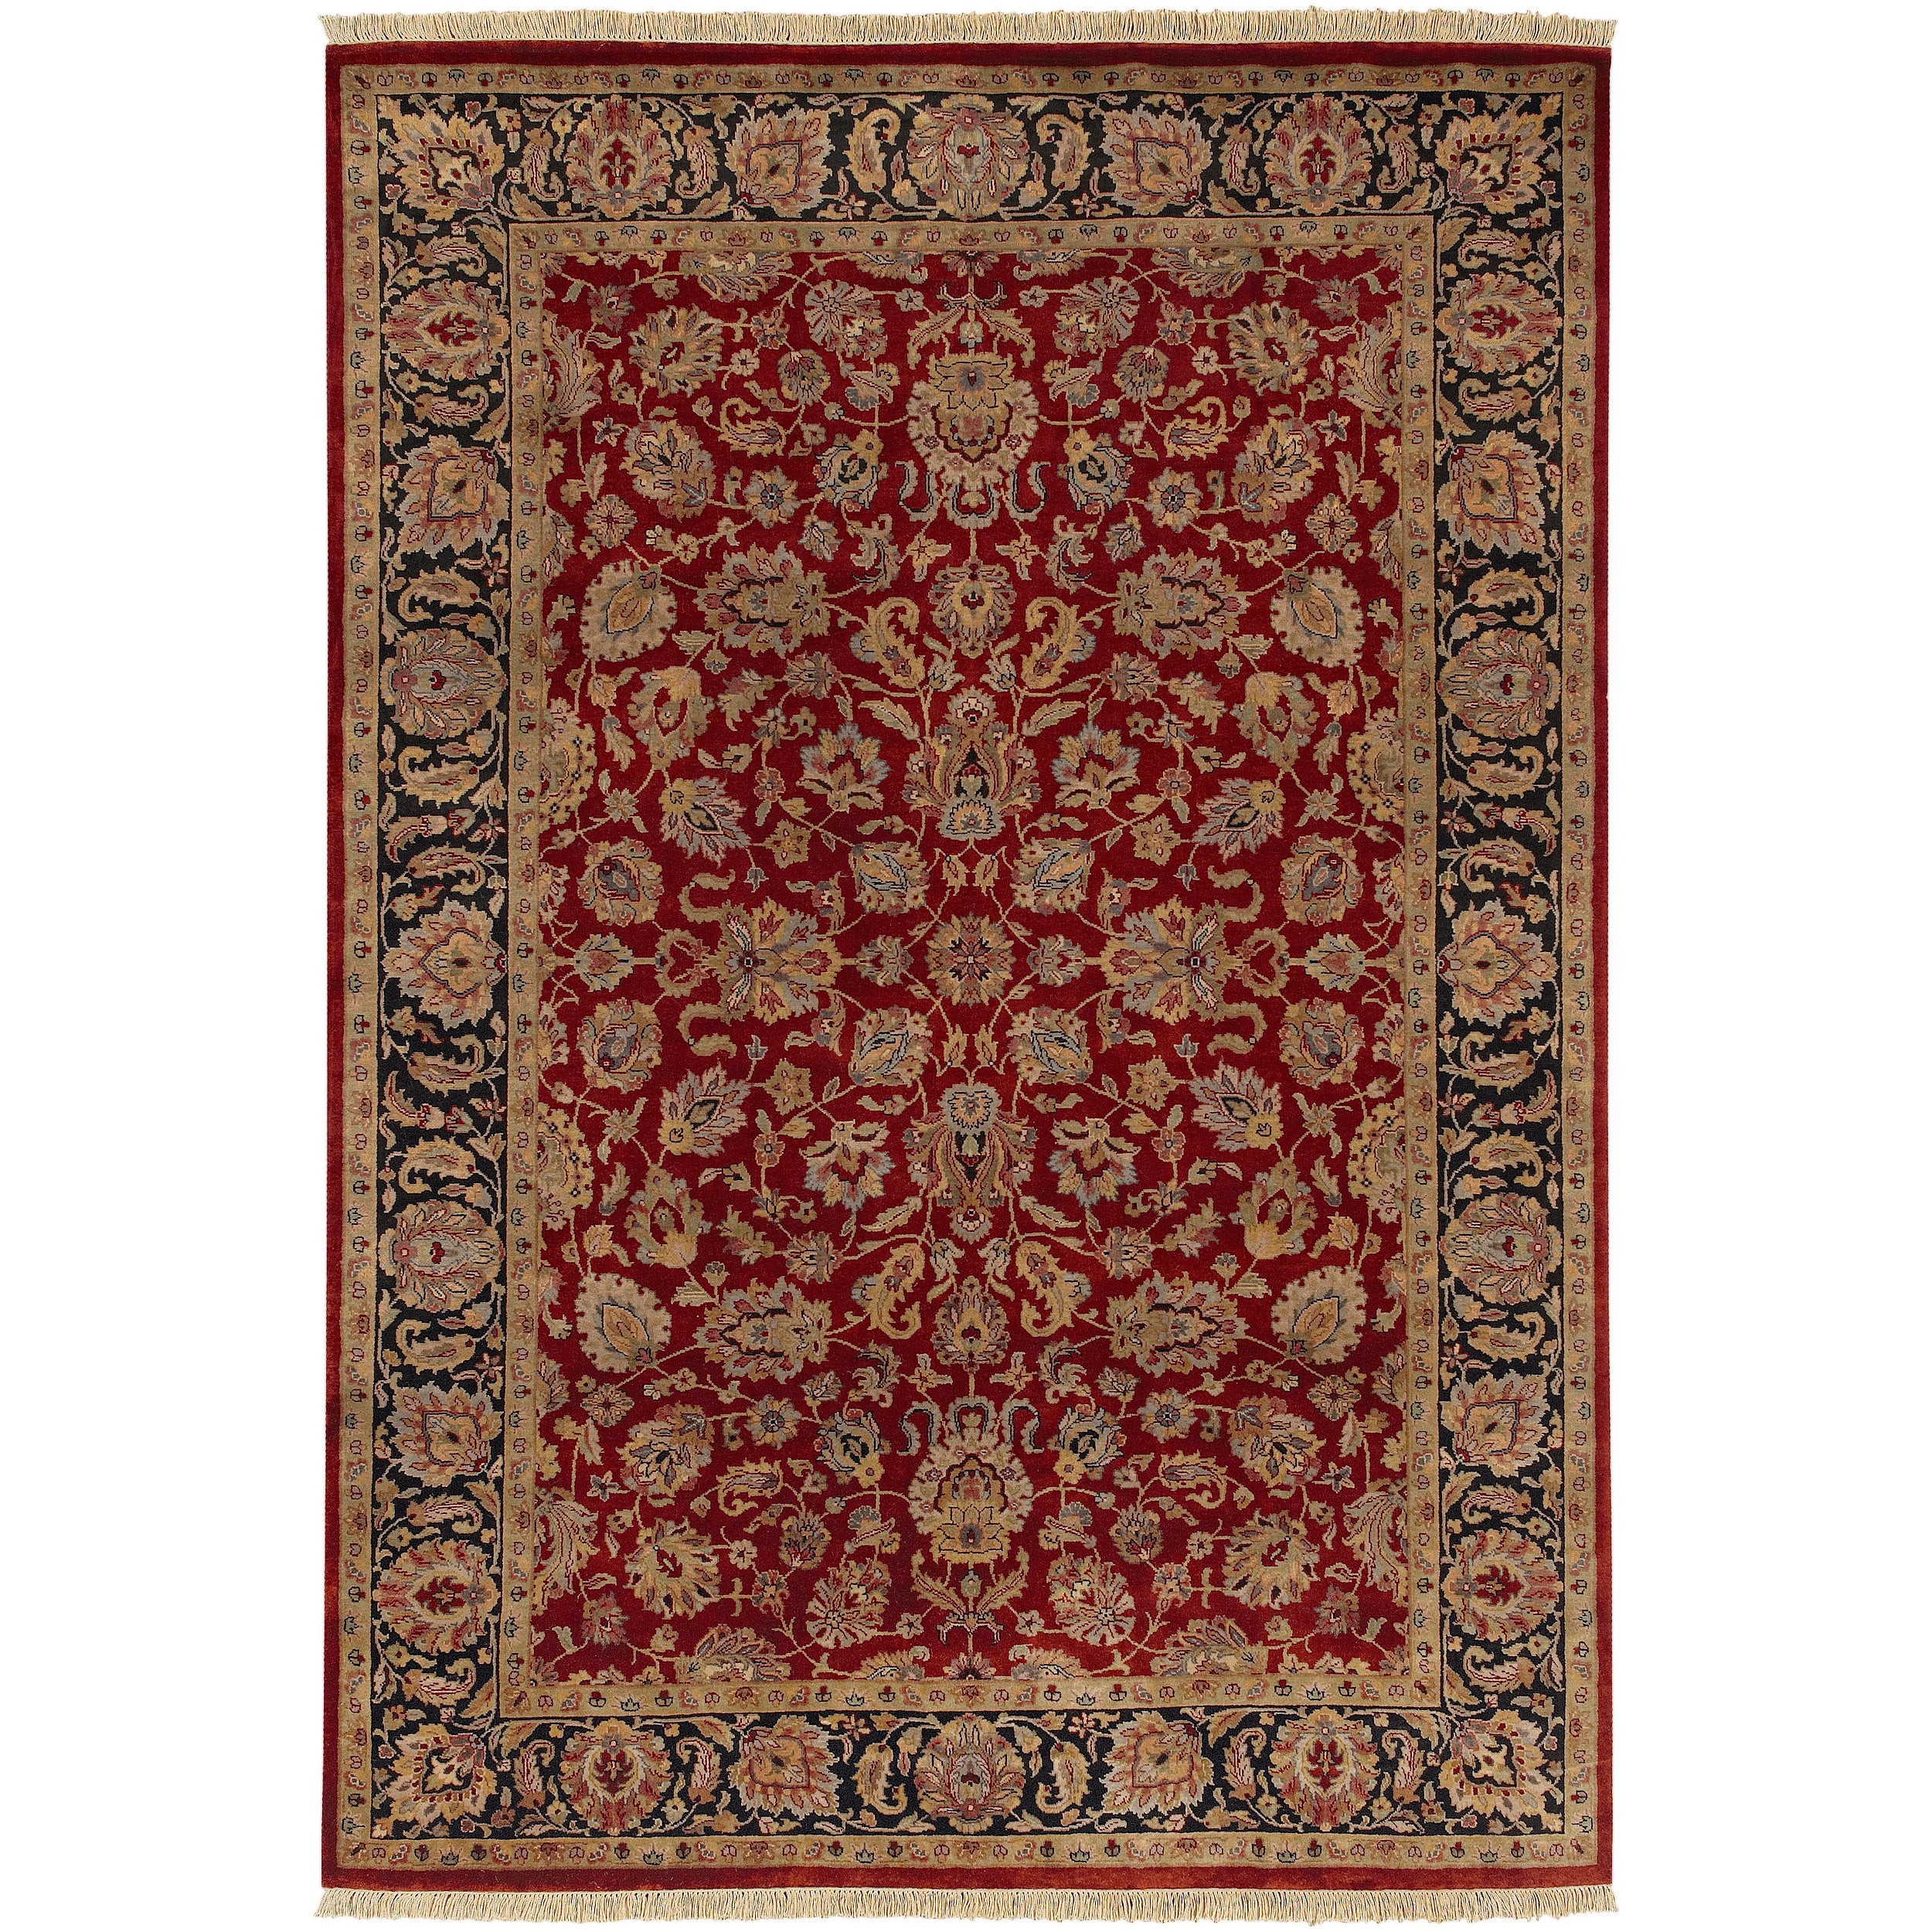 Hand-knotted Multicolored Burgundy La Crosse Semi-Worsted New Zealand Wool Area Rug - 5'6 x 8'6